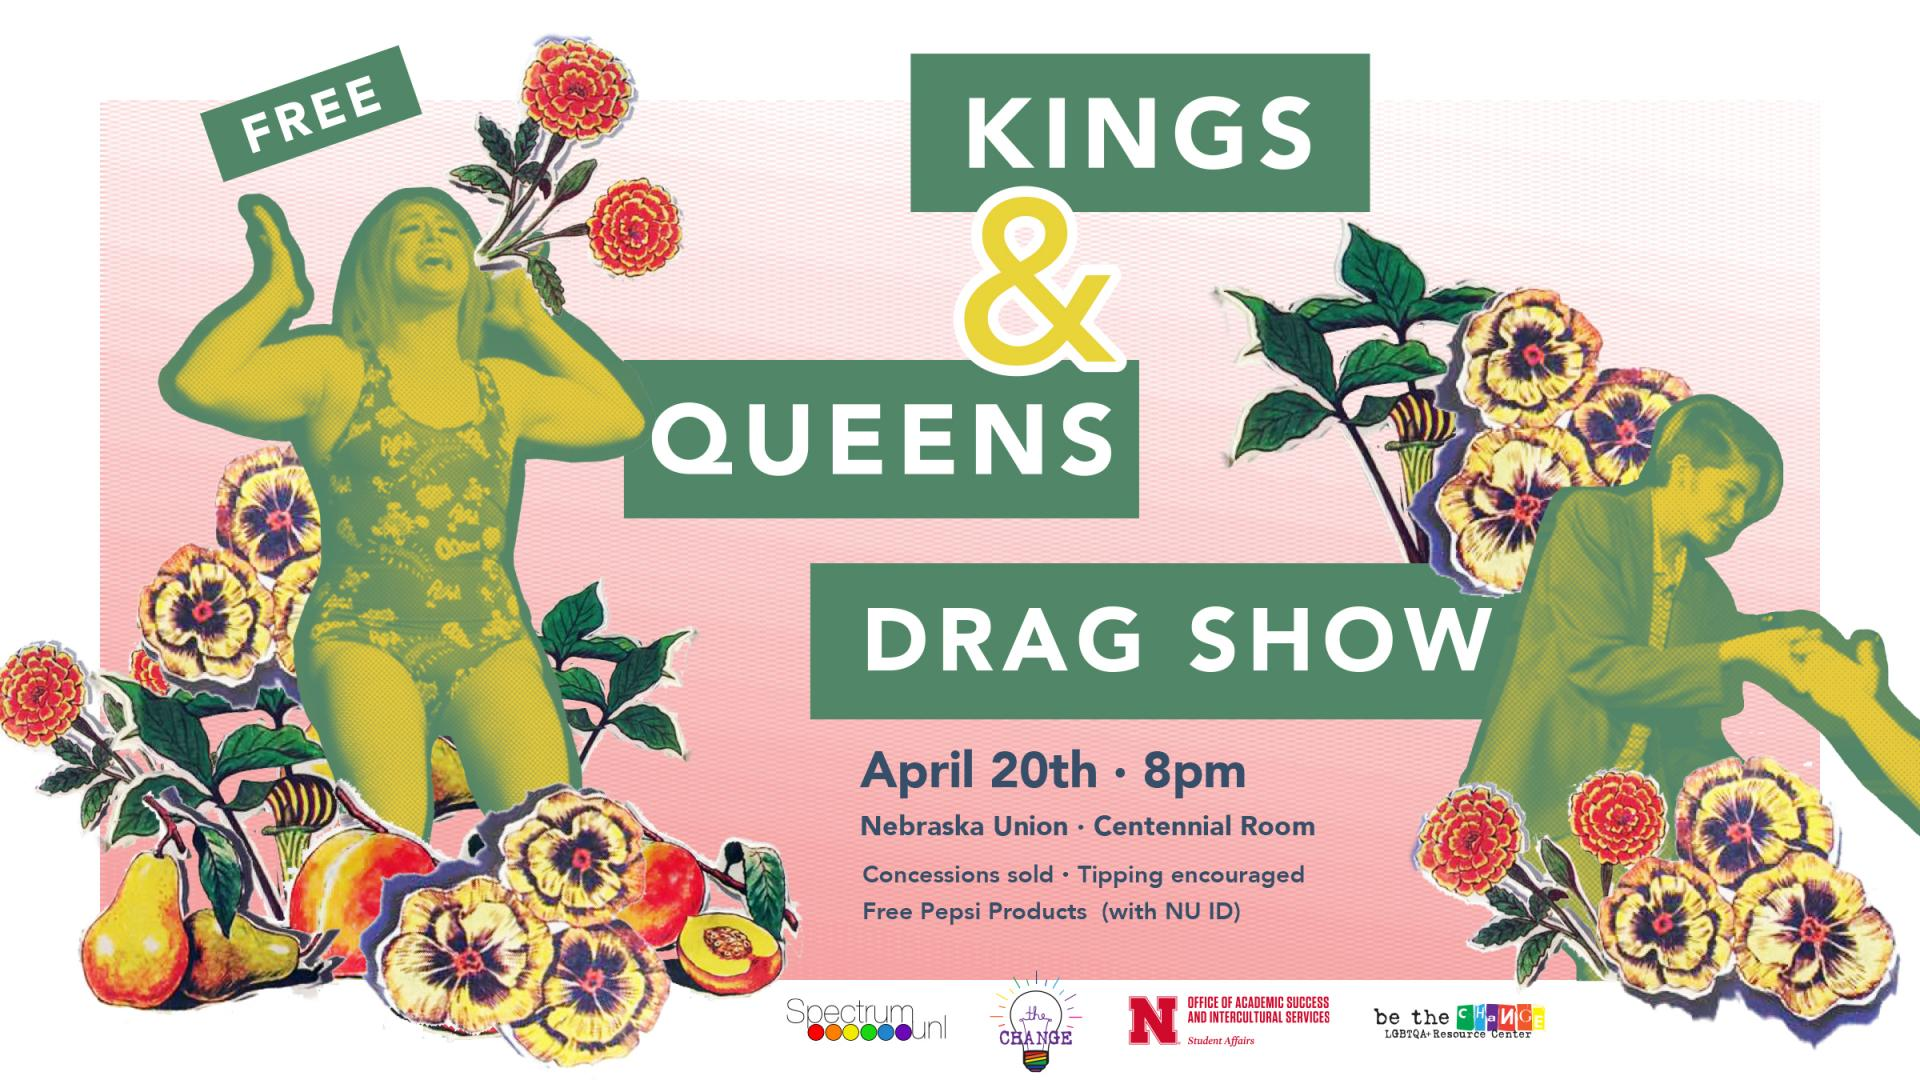 Drag Show poster